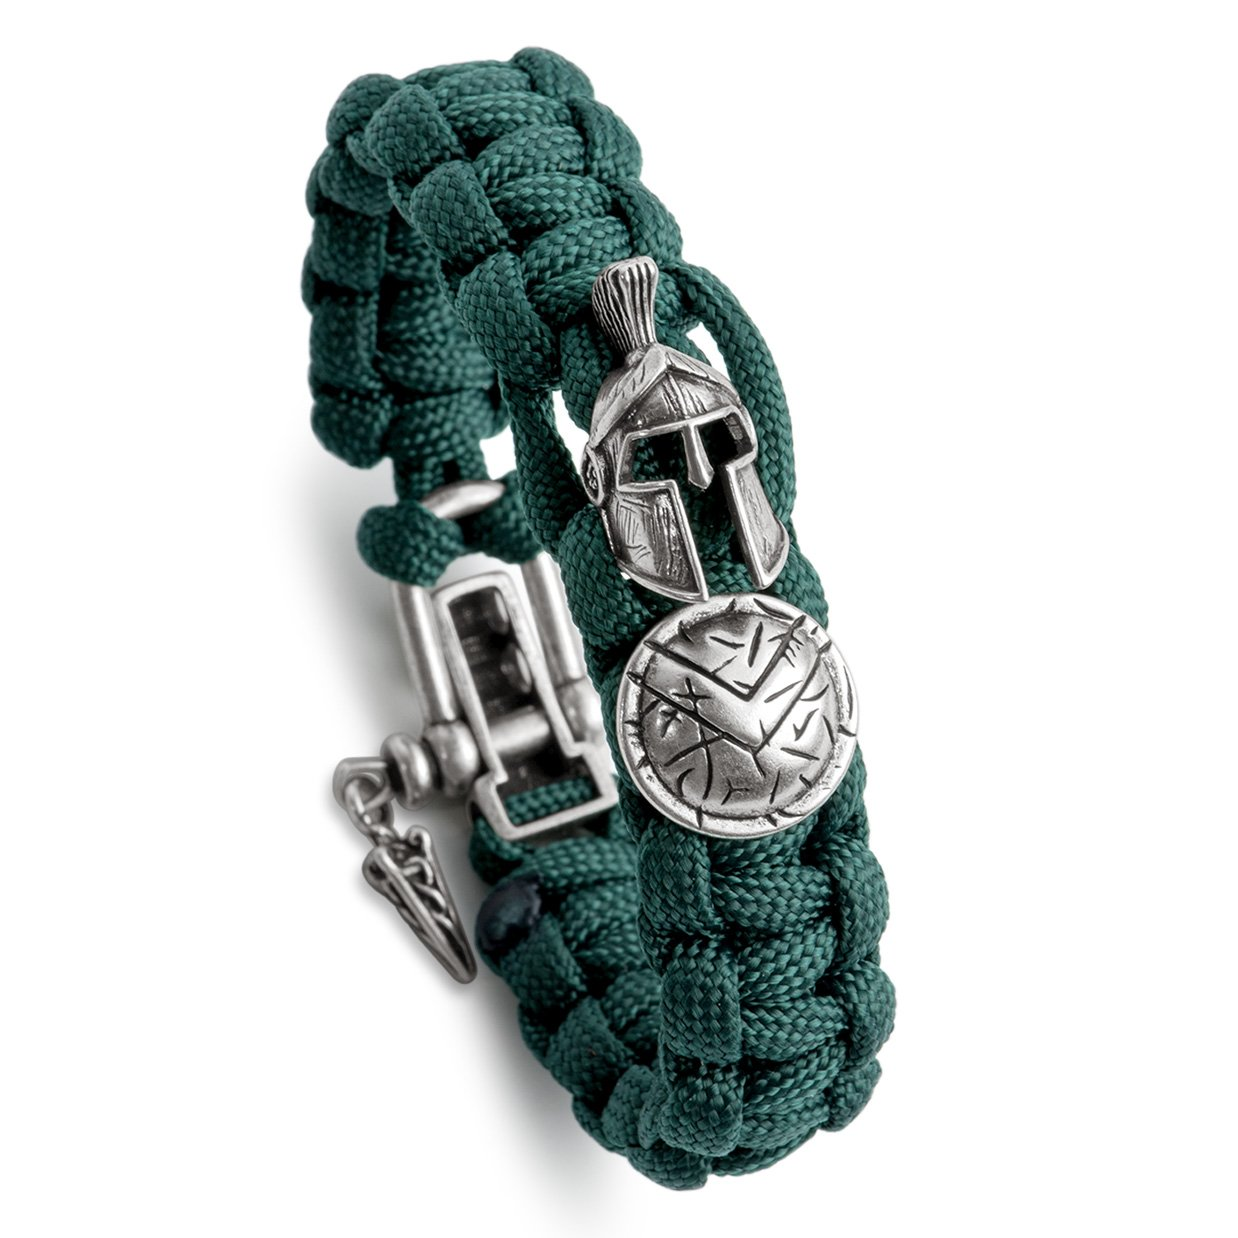 Kayder King Cobra Style Paracord Bracelet Narrow with Retro Theme Accessories & Adjustable D Shackle Men and Boys Jewelry Gift Camo(Green/yellow)